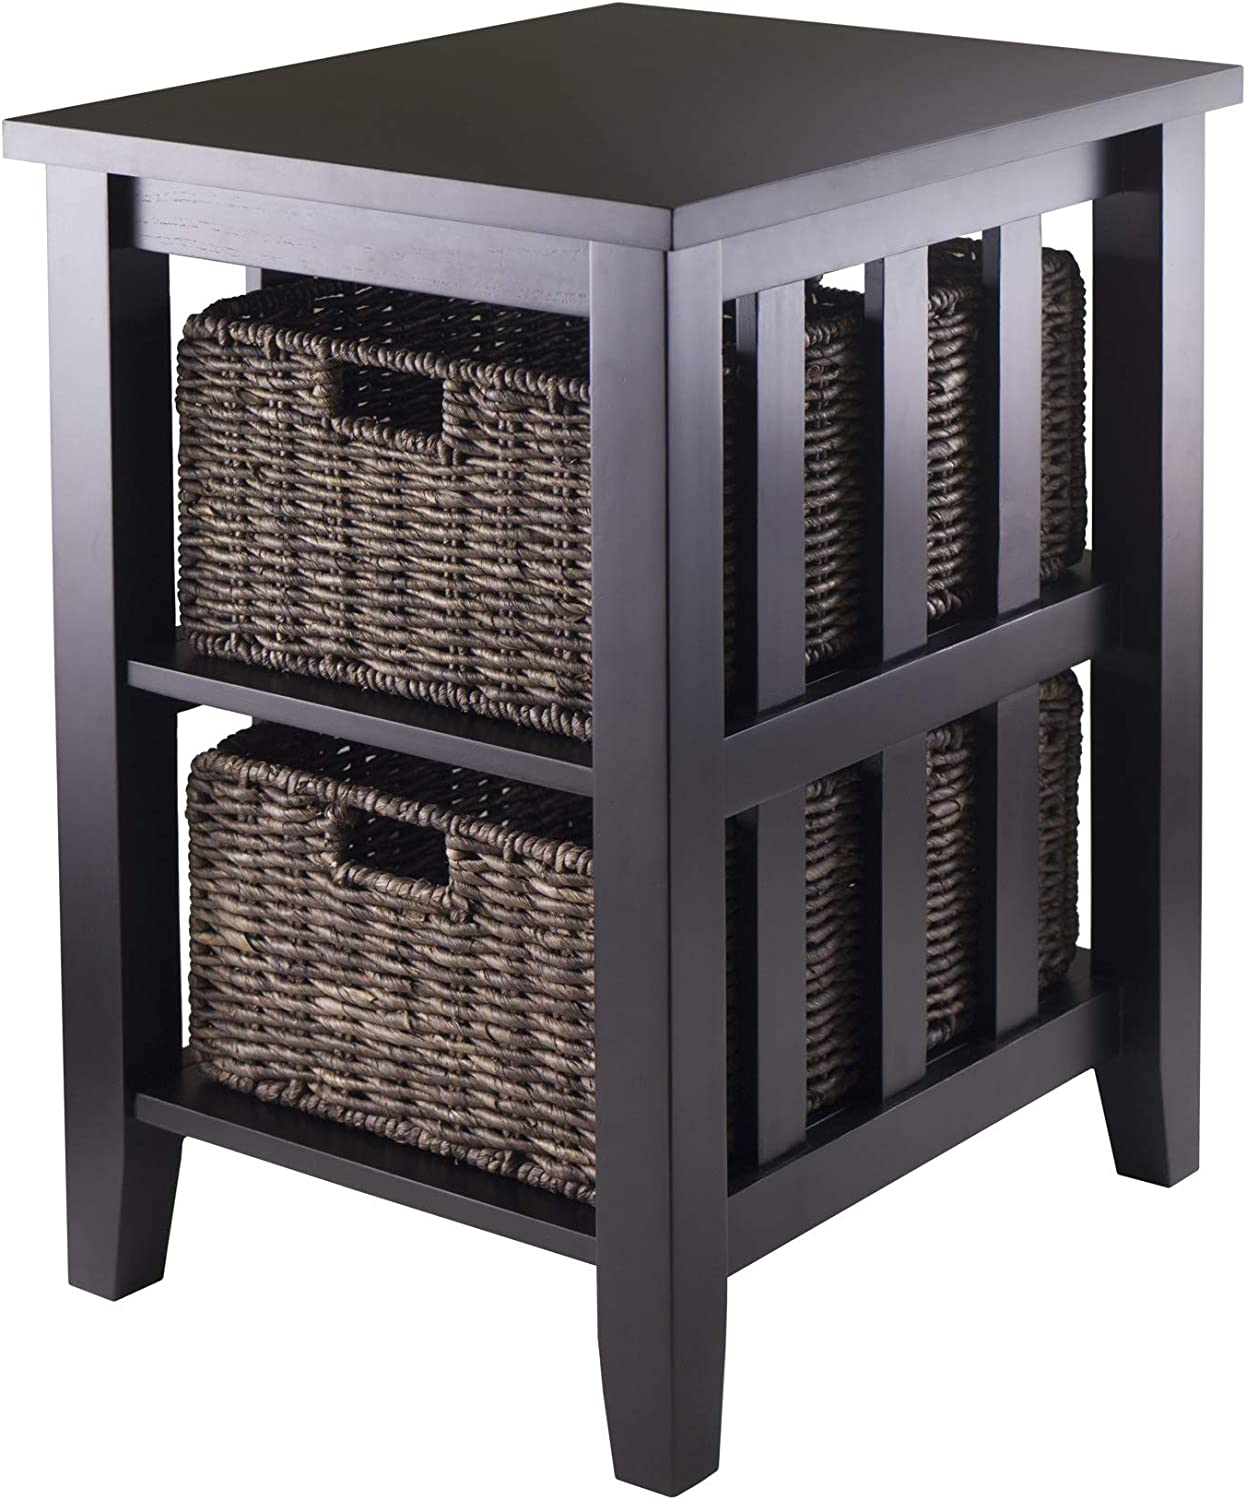 Winsome Wood Morris Side Table with 2-Foldable Basket